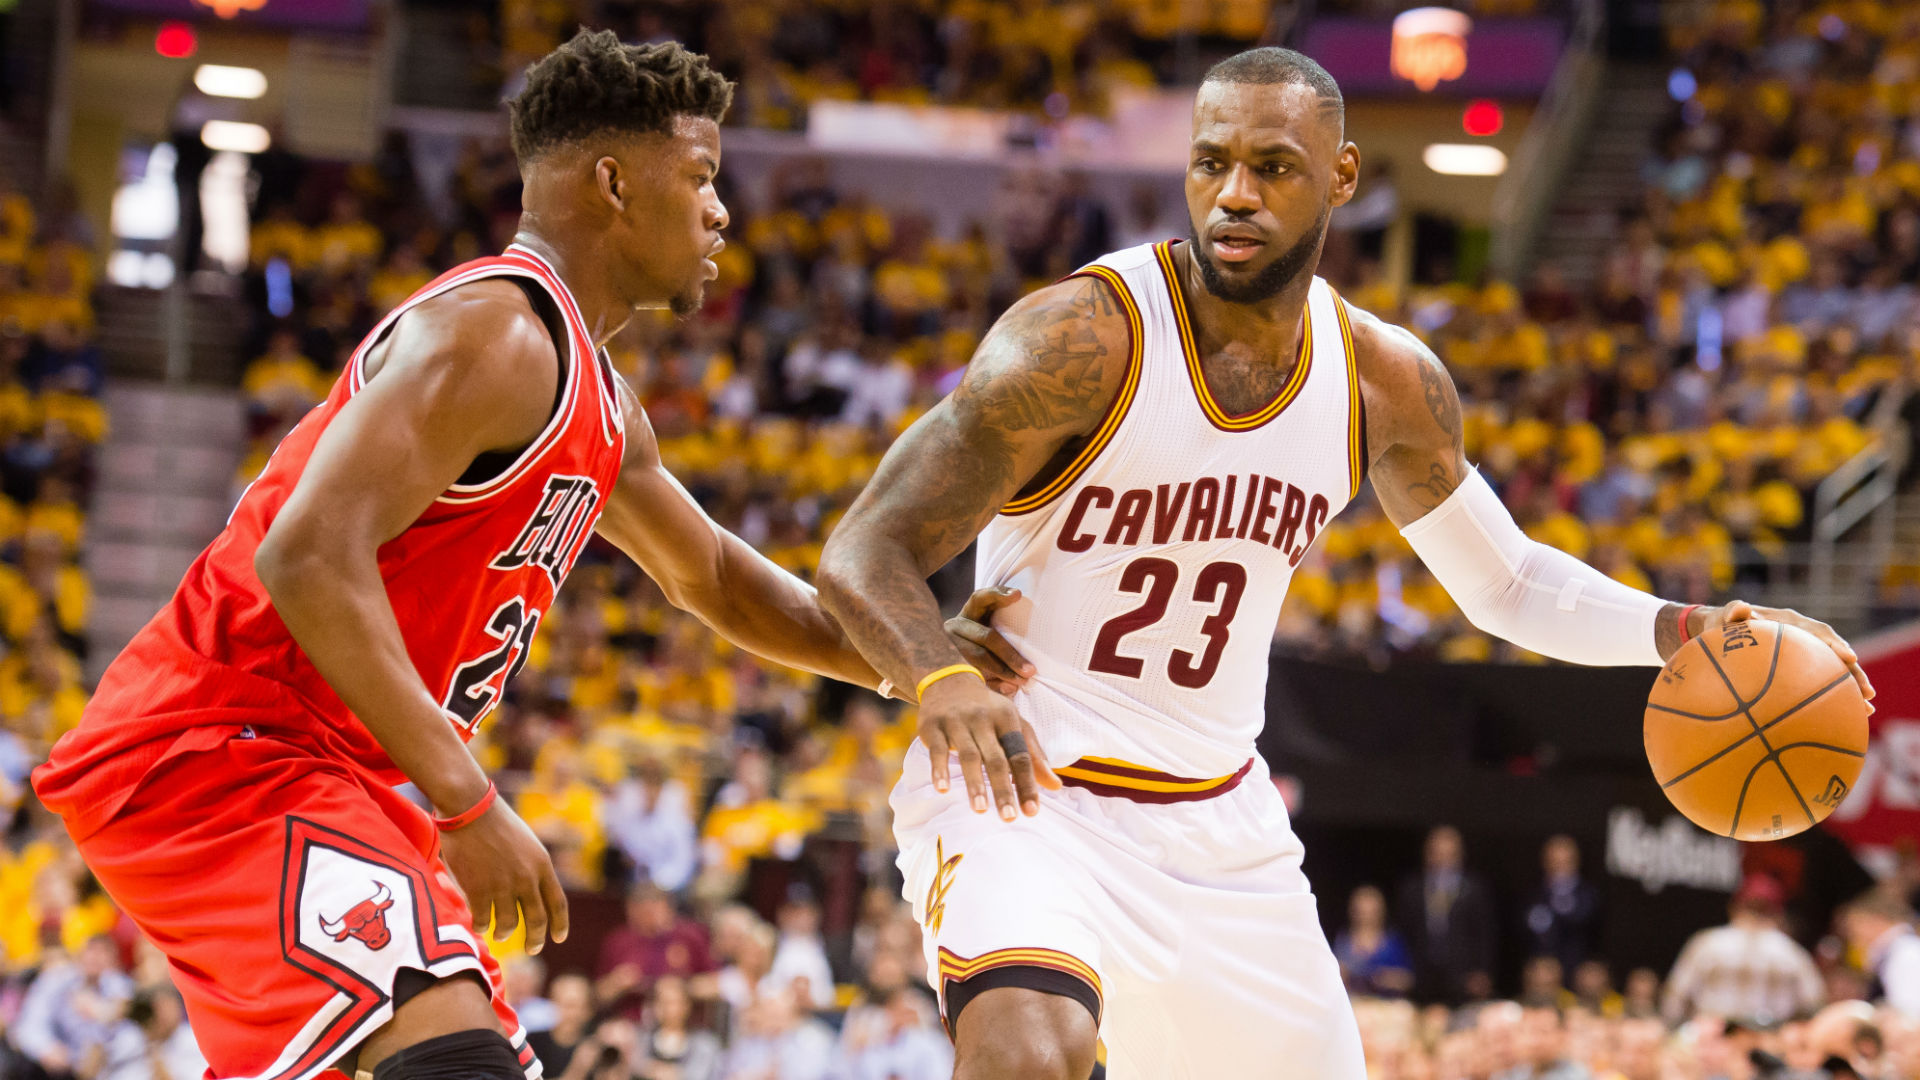 LeBron James on Game 2: 'I might have to change my mindset'